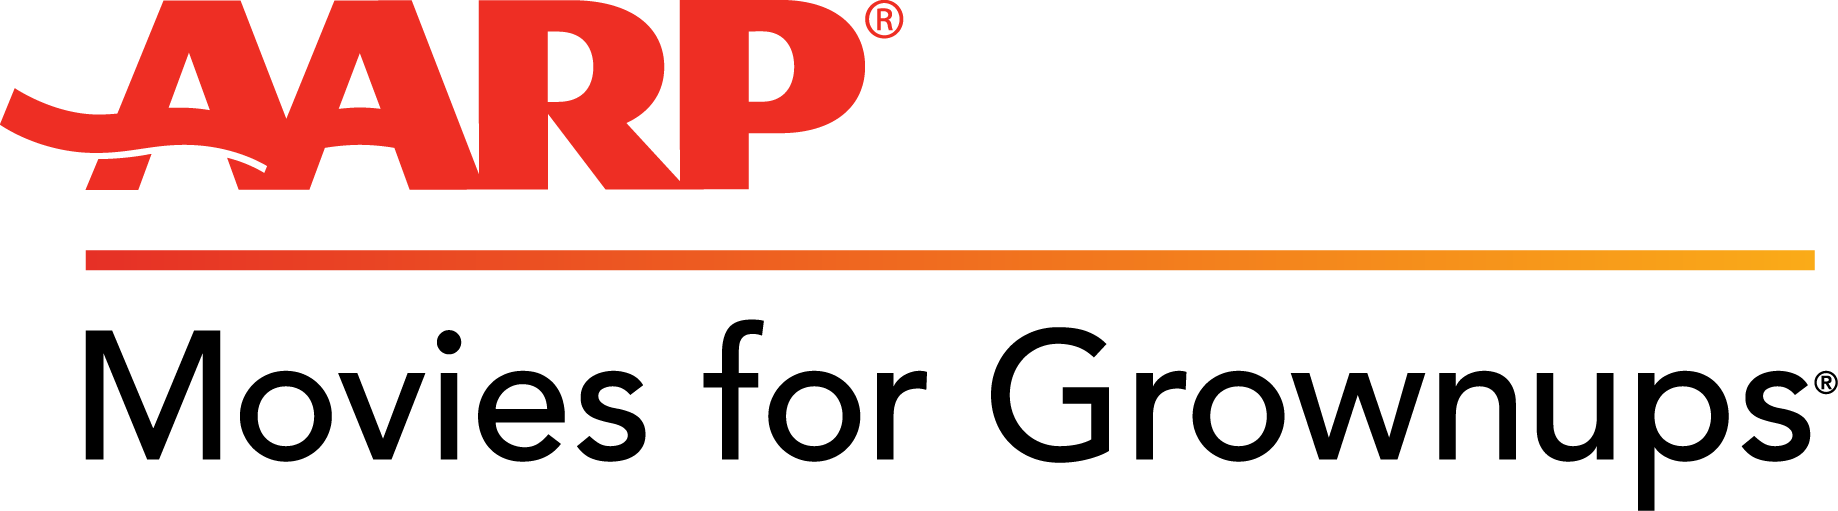 AARP_MFG_Gradient